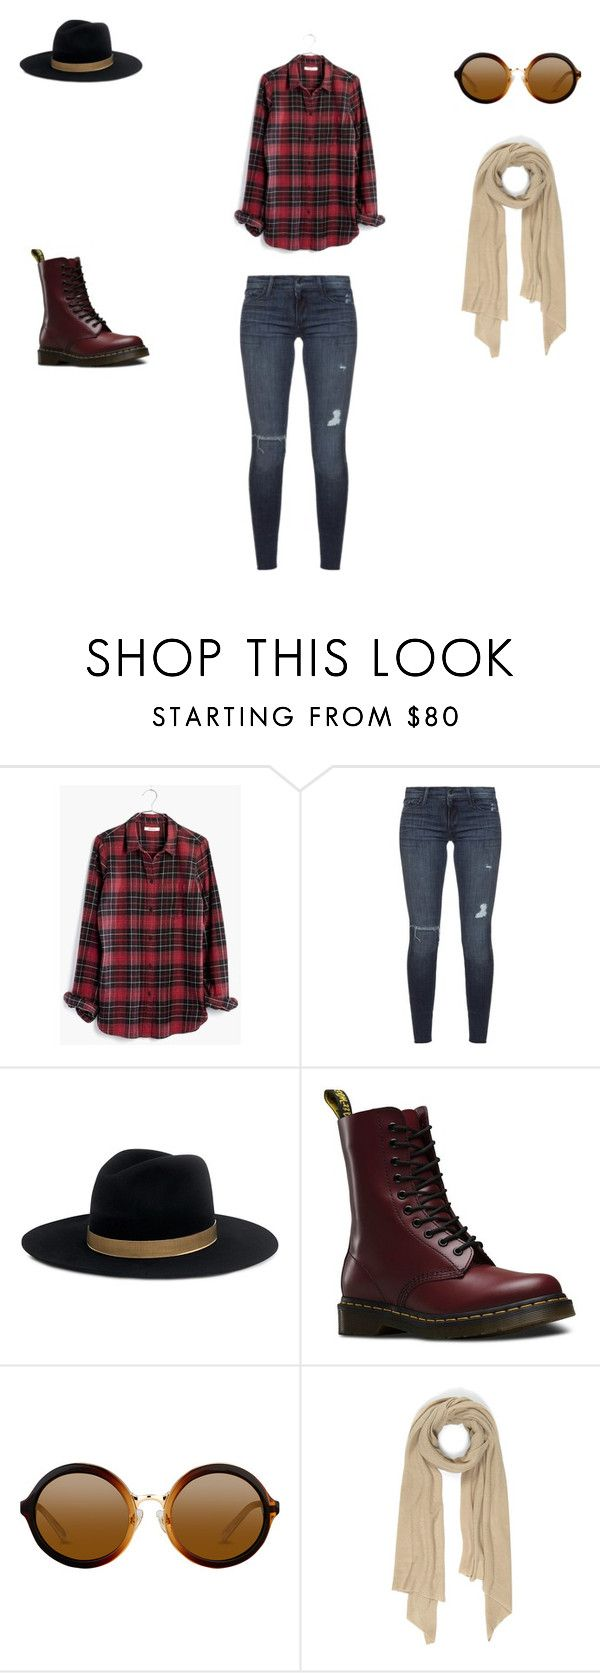 Untitled #4 by zuzia-apanasewicz on Polyvore featuring Madewell, Black Orchid, Dr. Martens, Cash Ca and Janessa Leone